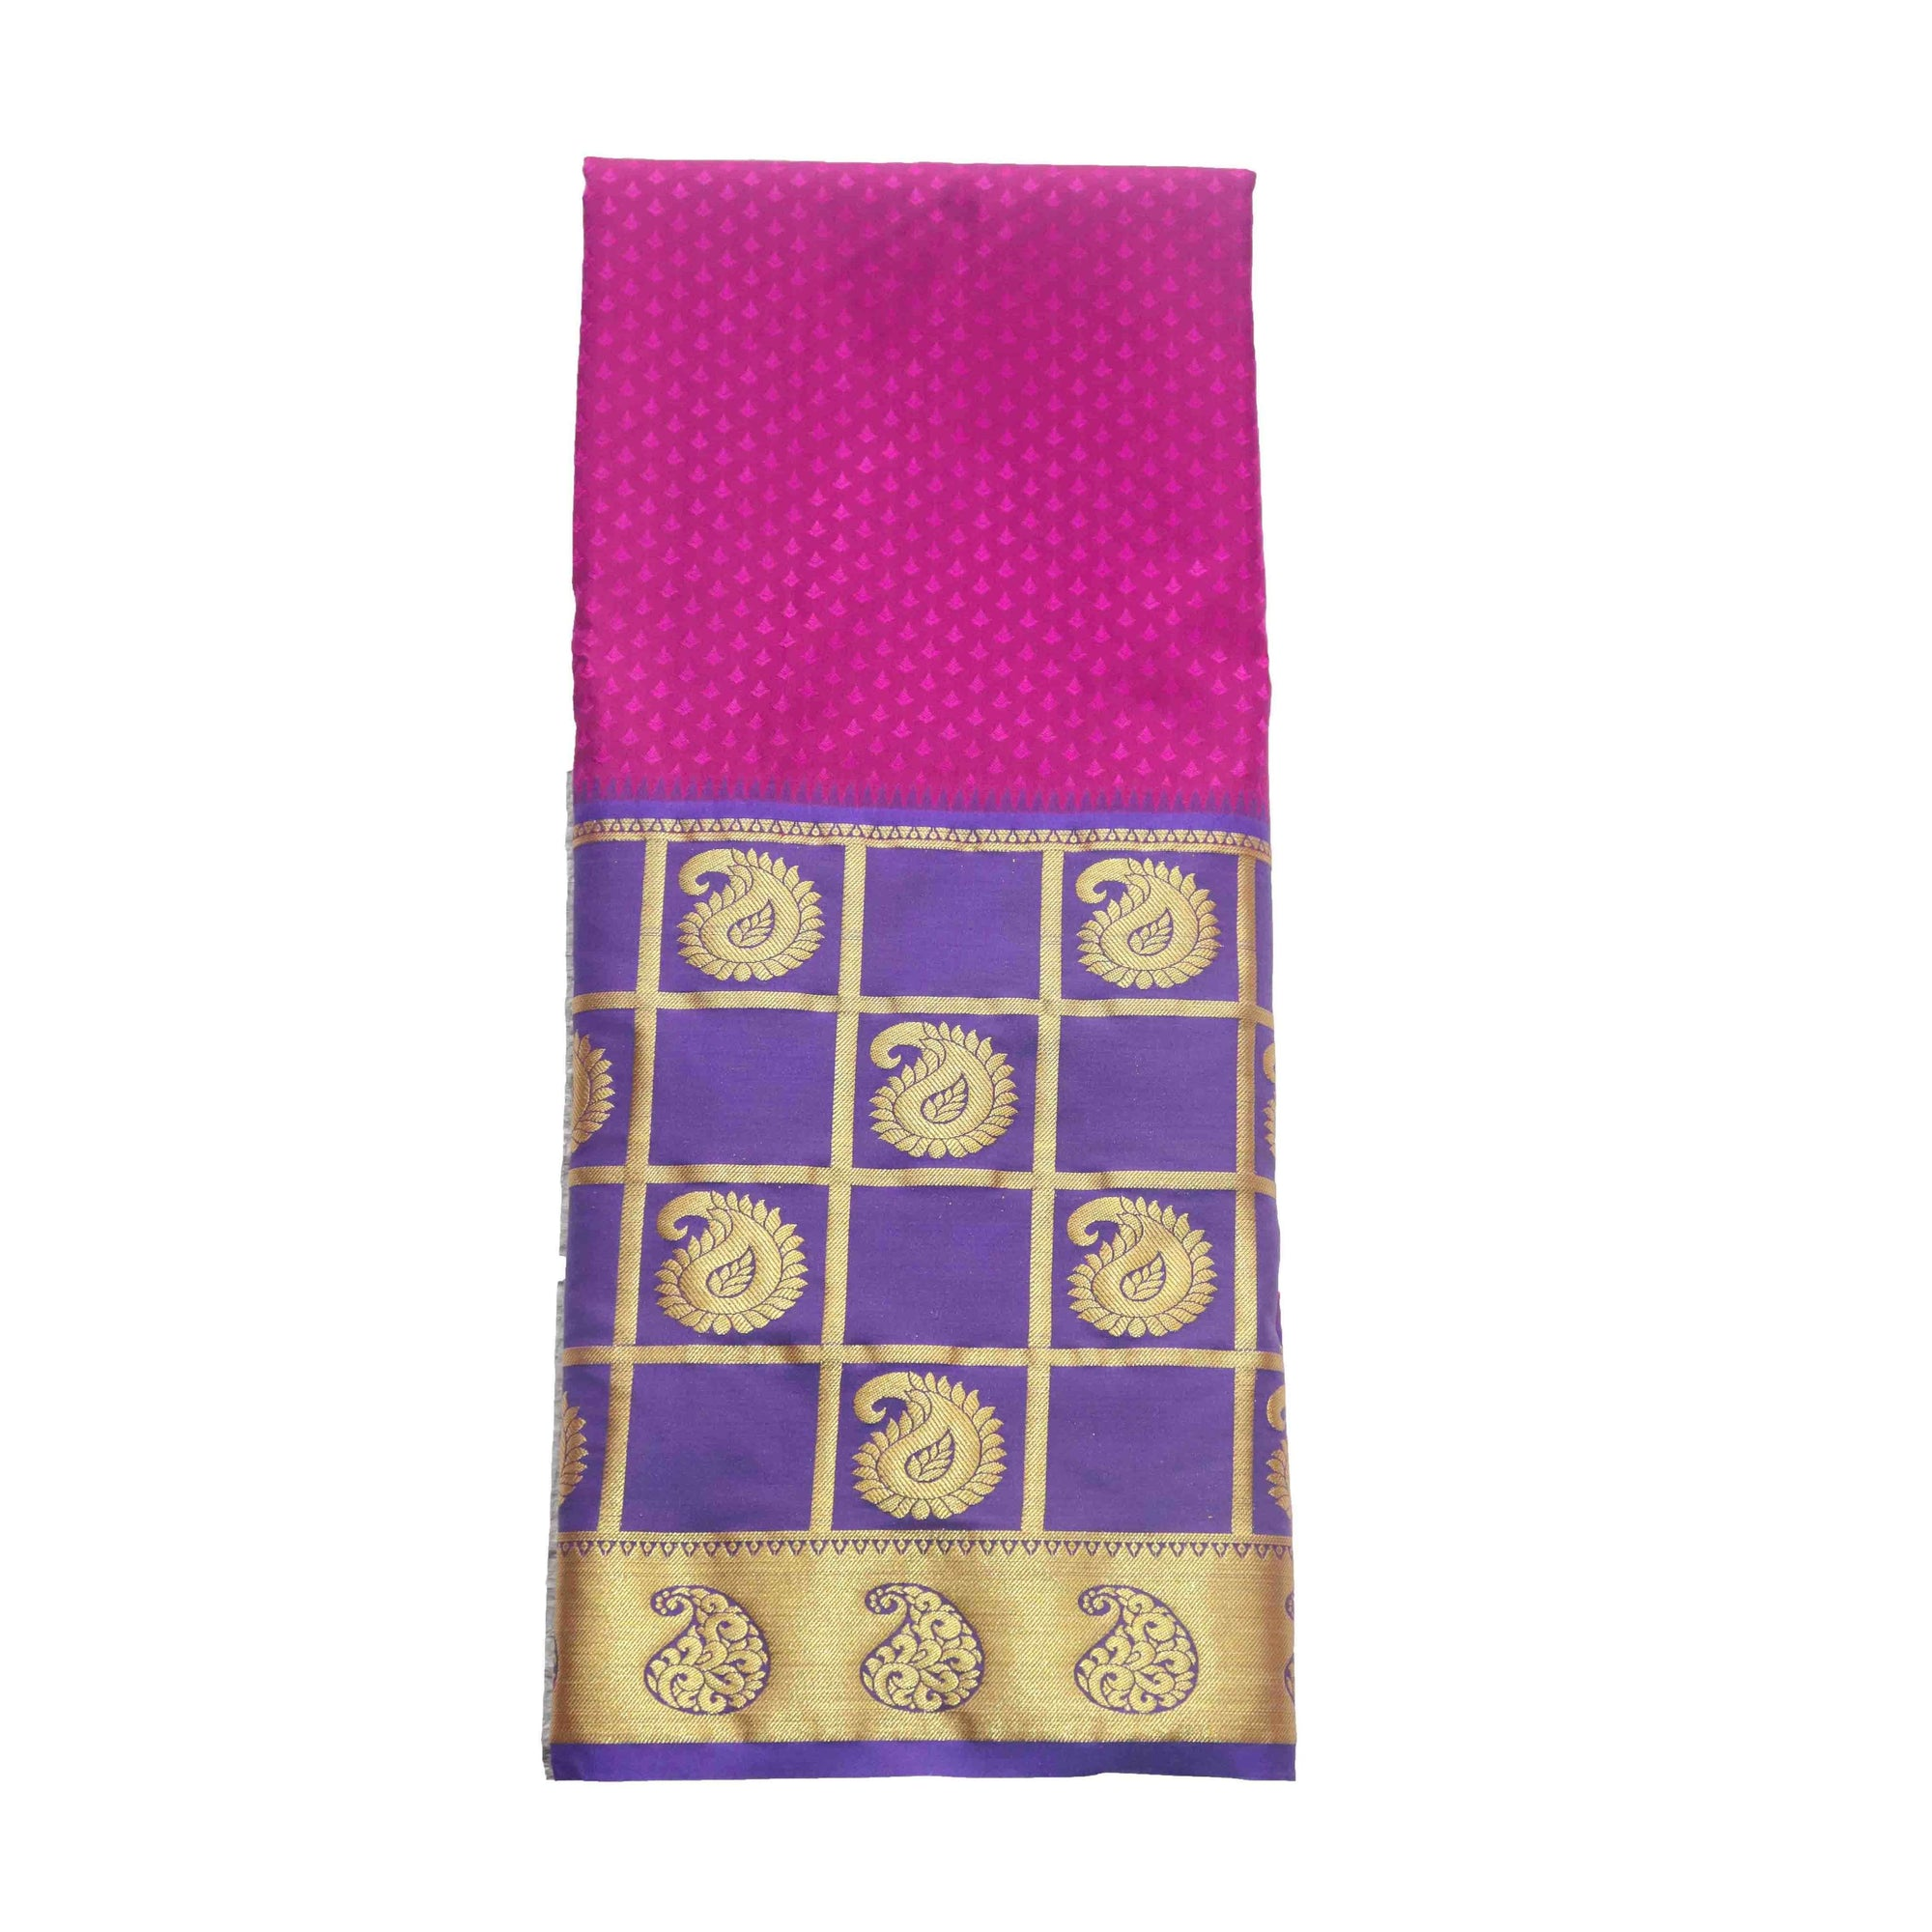 Arars Women's Kanchipuram Kanjivaram Pattu Style Art Embosed Plain Silk Saree With Blouse (470 PURPLE ROYAL )